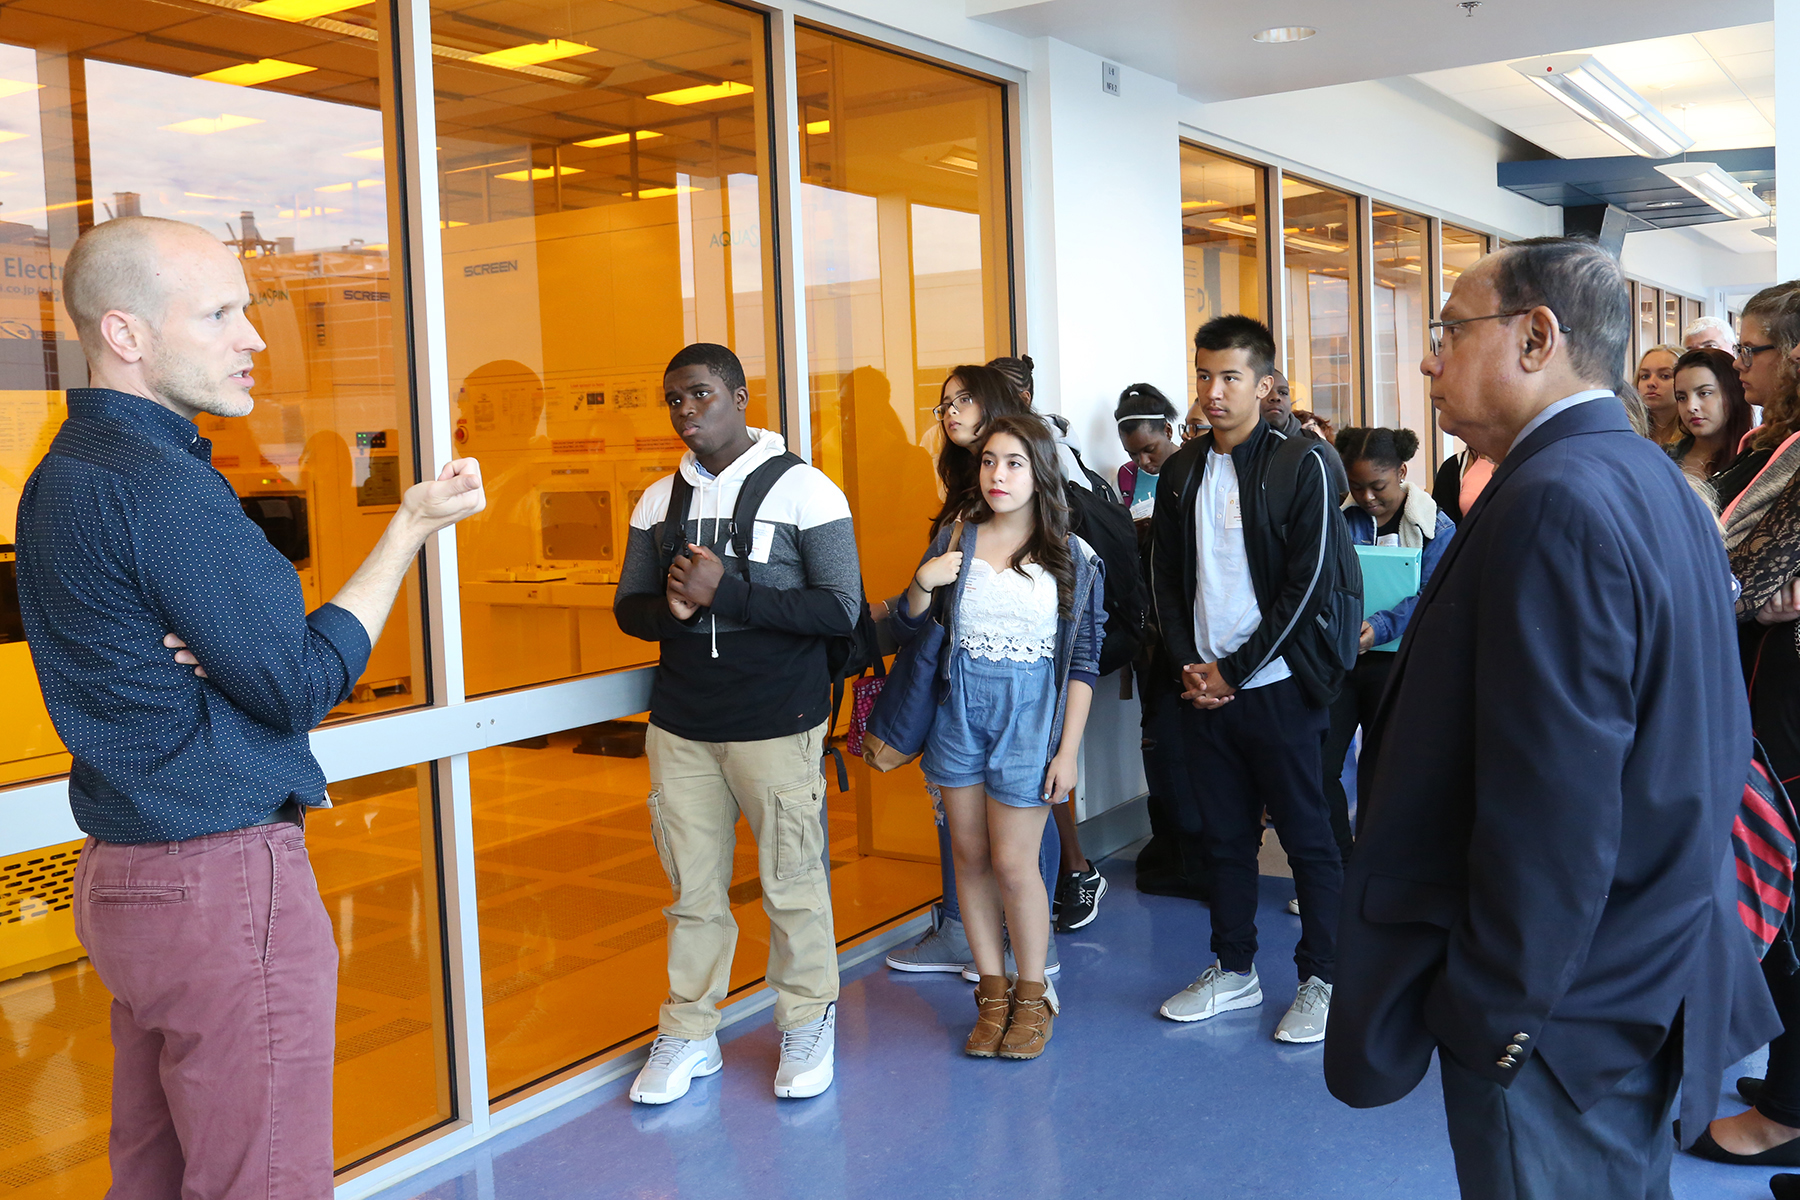 Elementary students get a tour of SUNY Poly Nanotech Center in Albany.